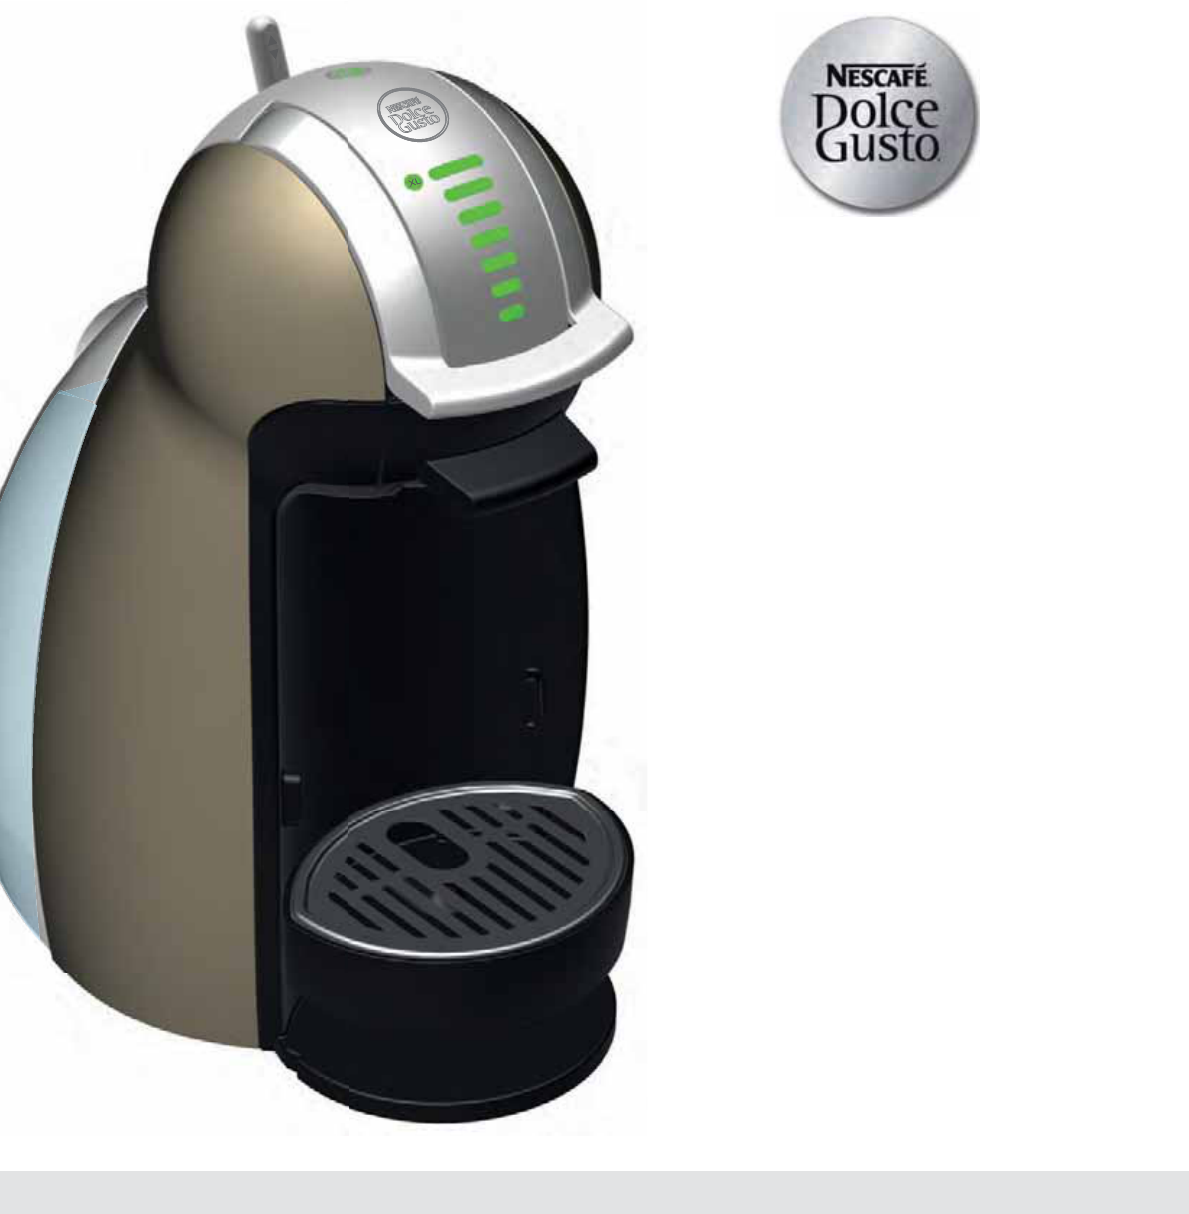 Handleiding Princess Coffee Maker And Grinder : Dolce gusto circolo user manual pdf / Emergency medicine pearls of wisdom board reviews.mobi